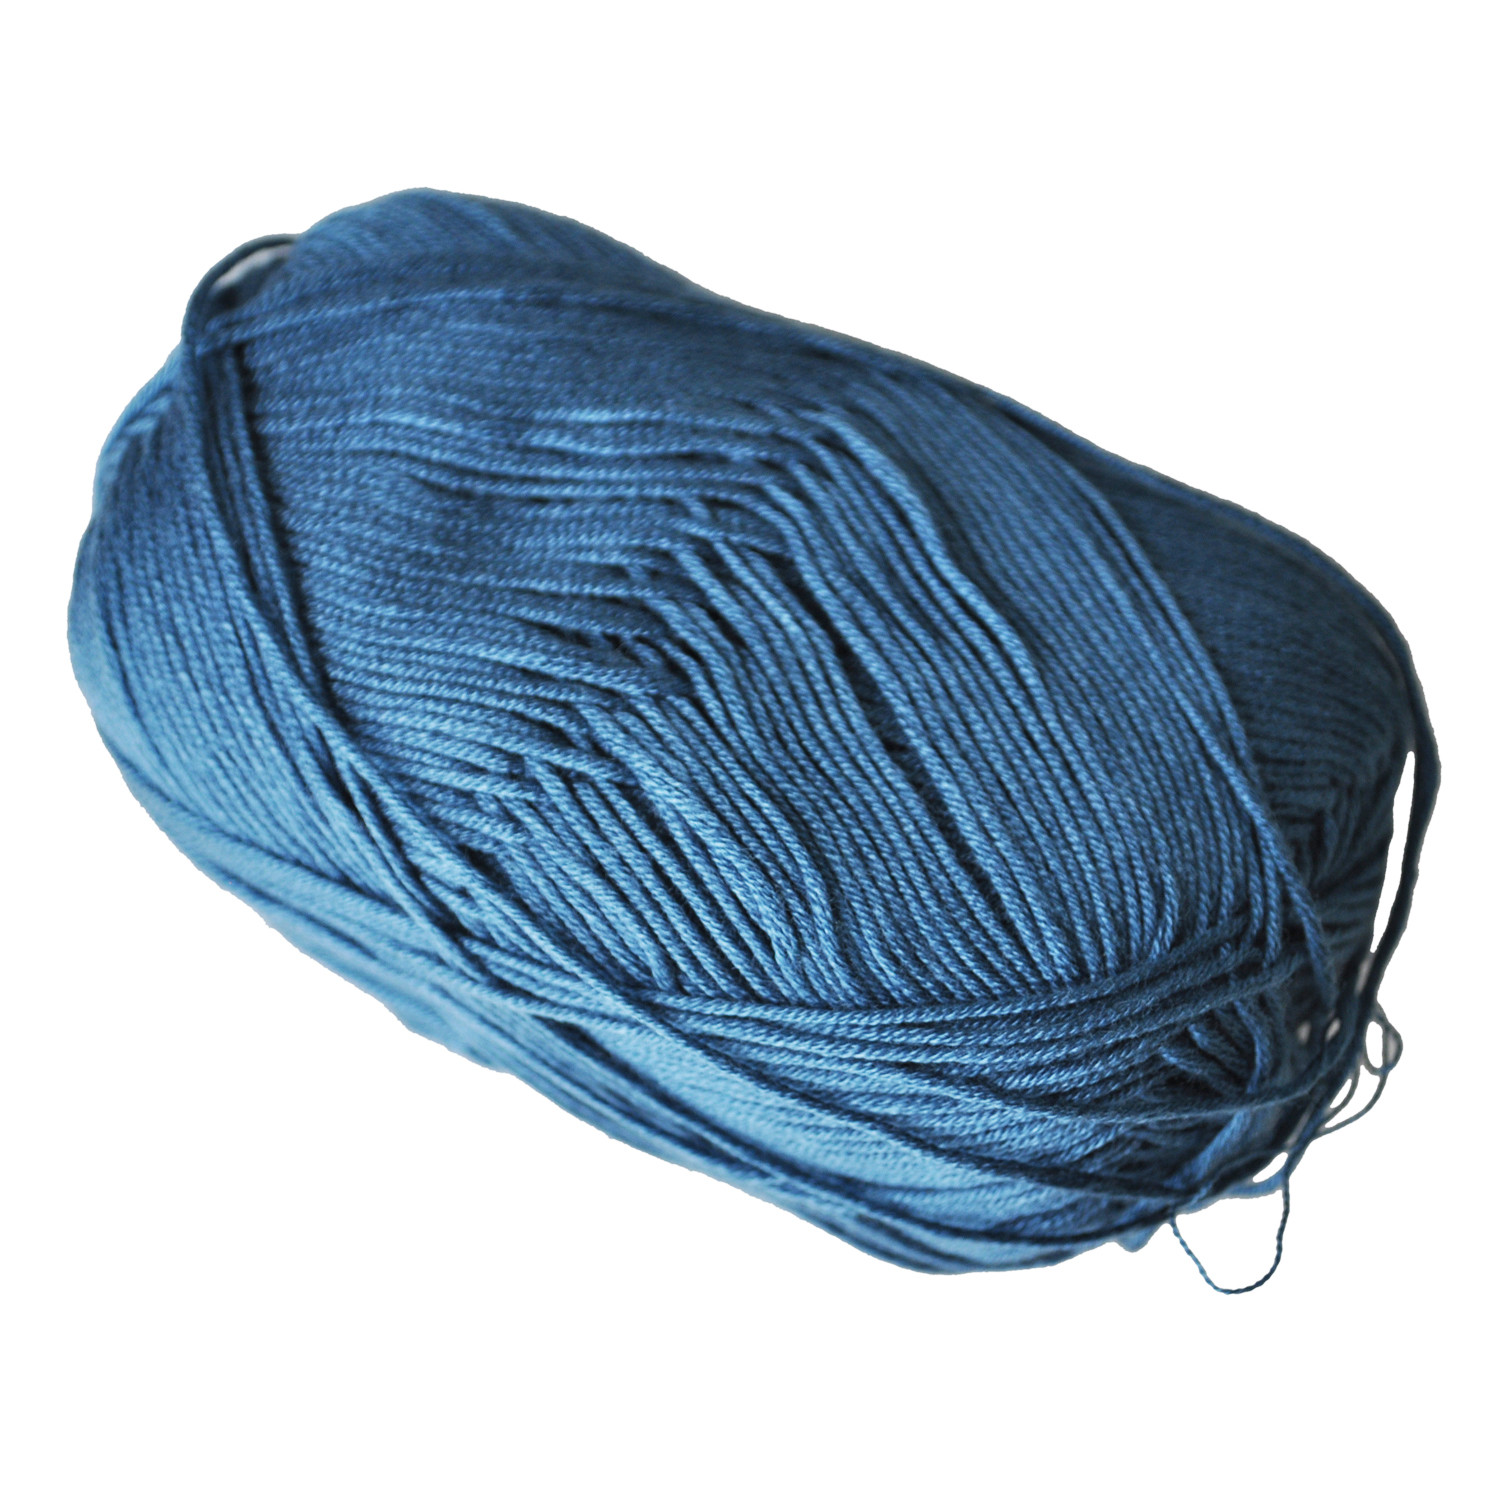 Best Cotton Yarn New 50g Tencel Bamboo Cotton Yarn for Baby Deep Blue N7h1 Of Unique 44 Ideas Best Cotton Yarn